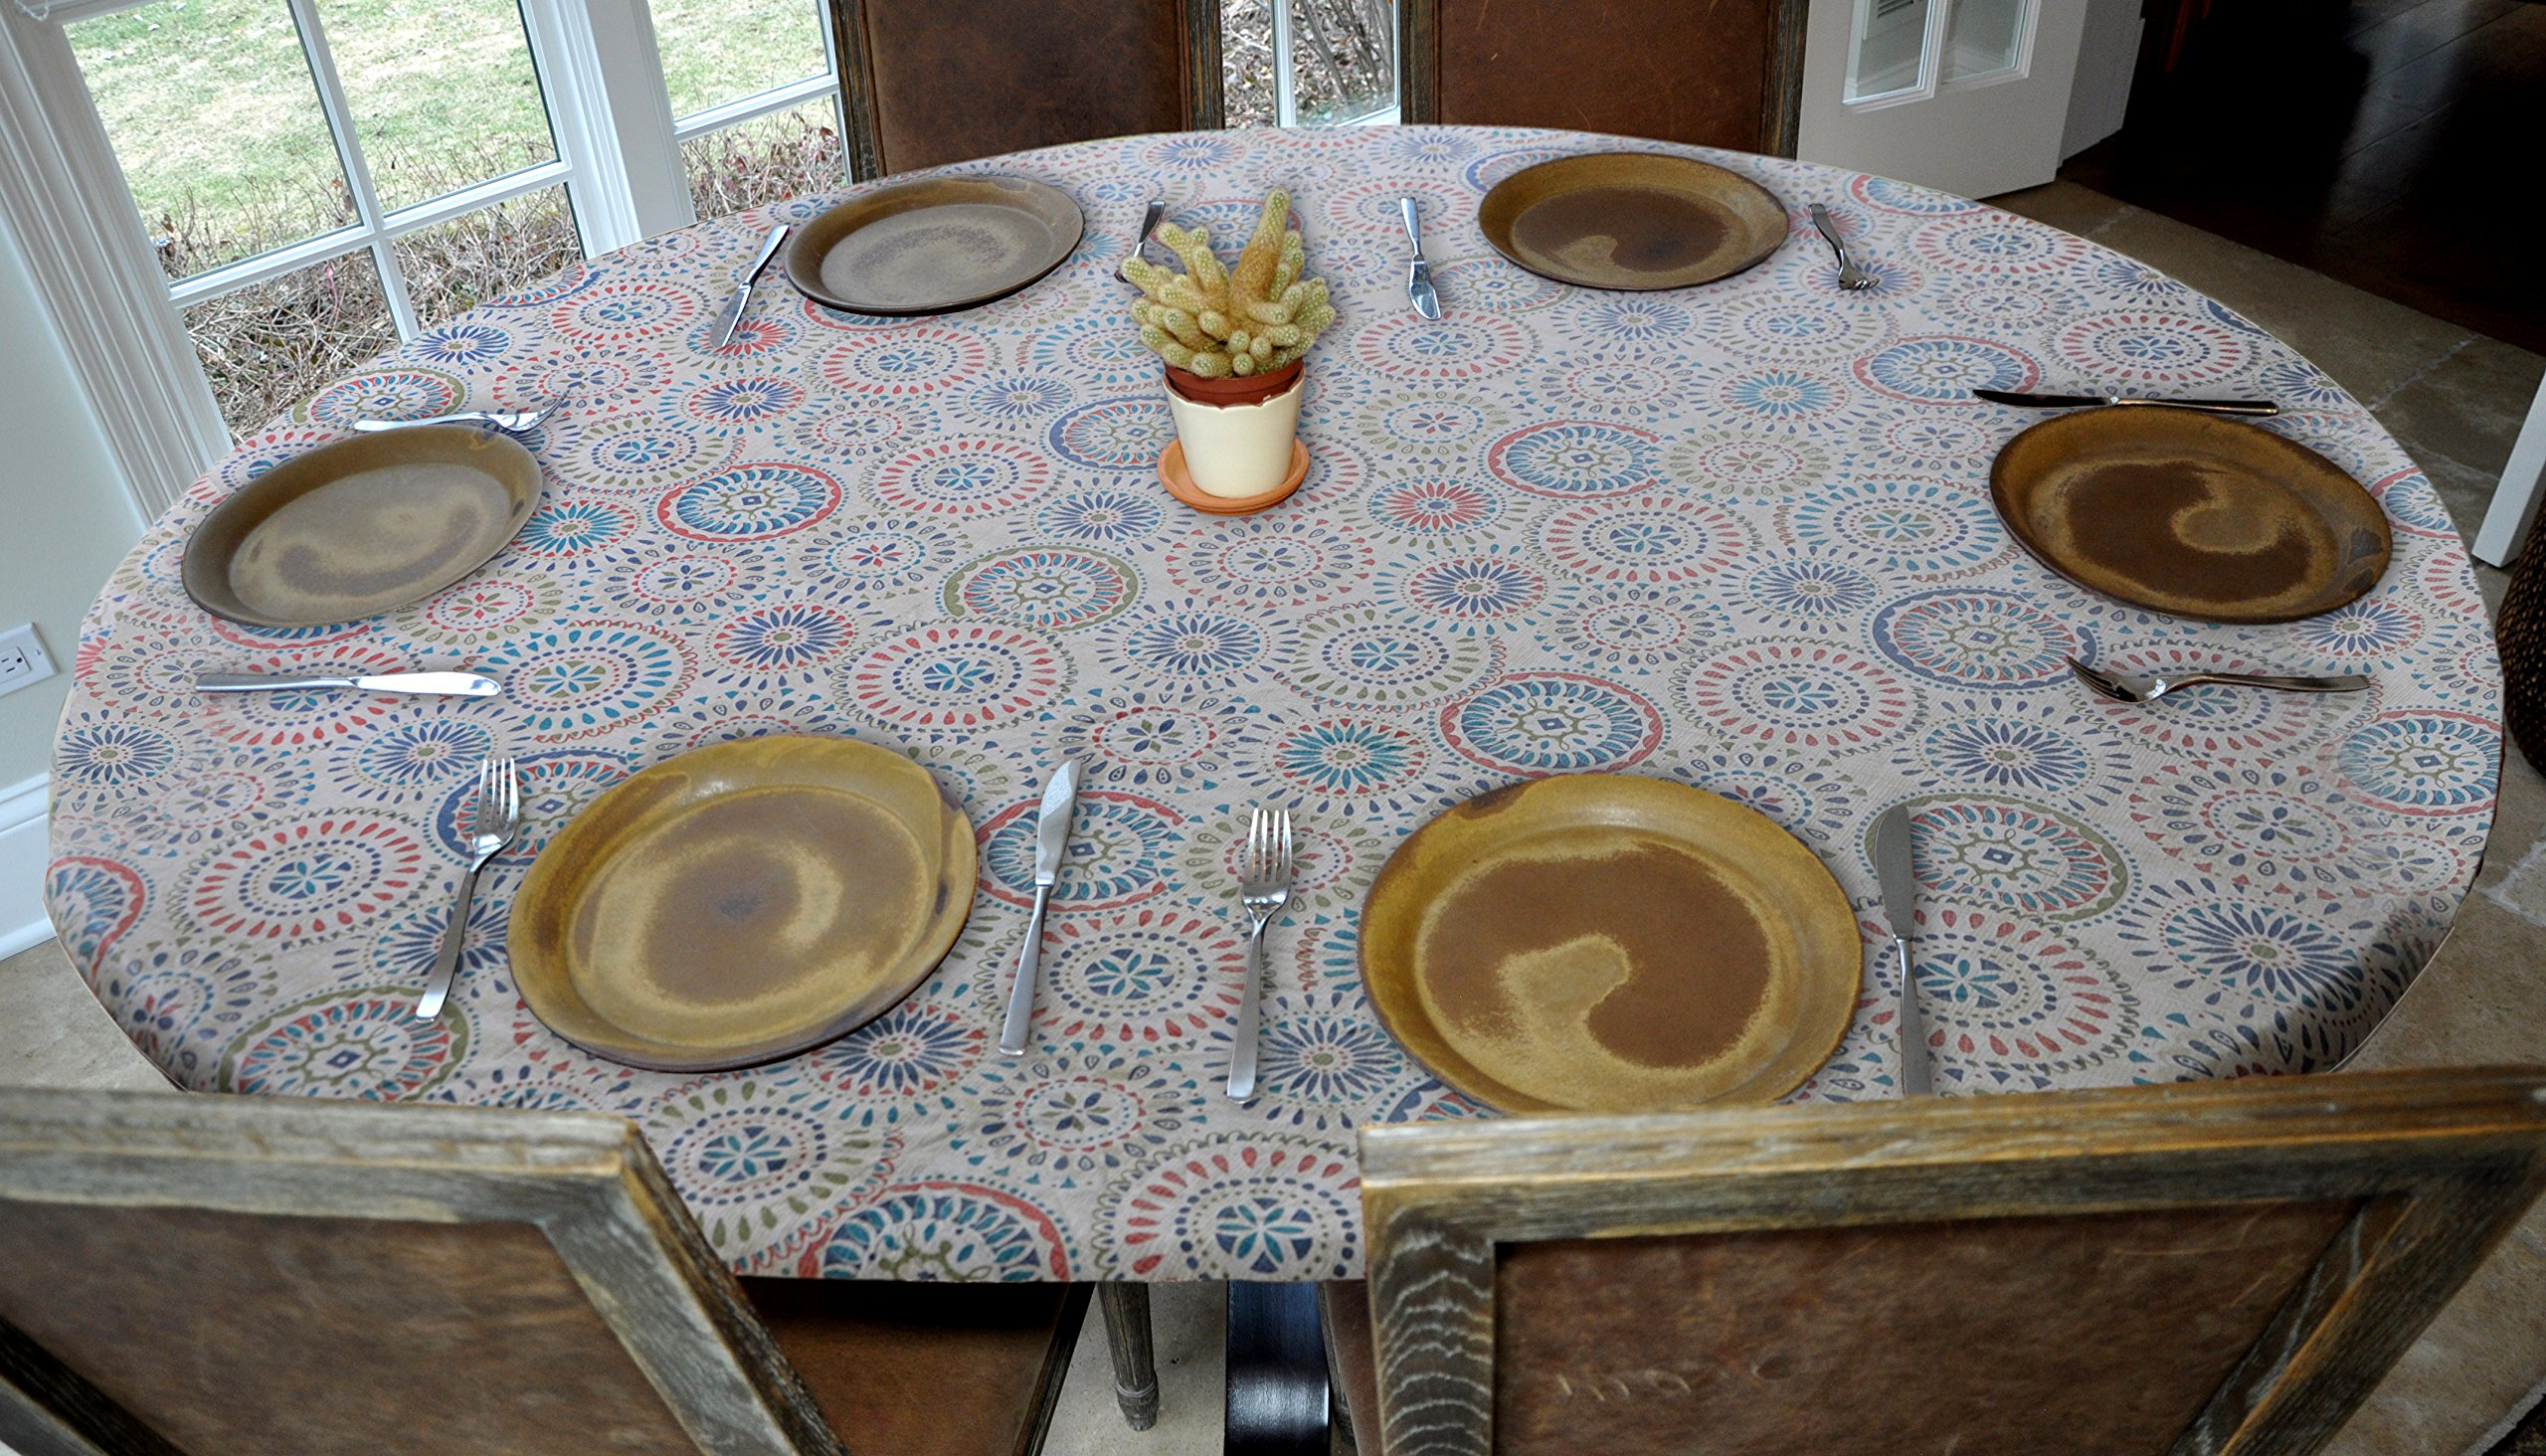 Elastic Edged Flannel Backed Vinyl Fitted Table Cover - Multi-Color Geometric Pattern - Oblong/Oval  Fits Tables Up to 48''W x 68''L